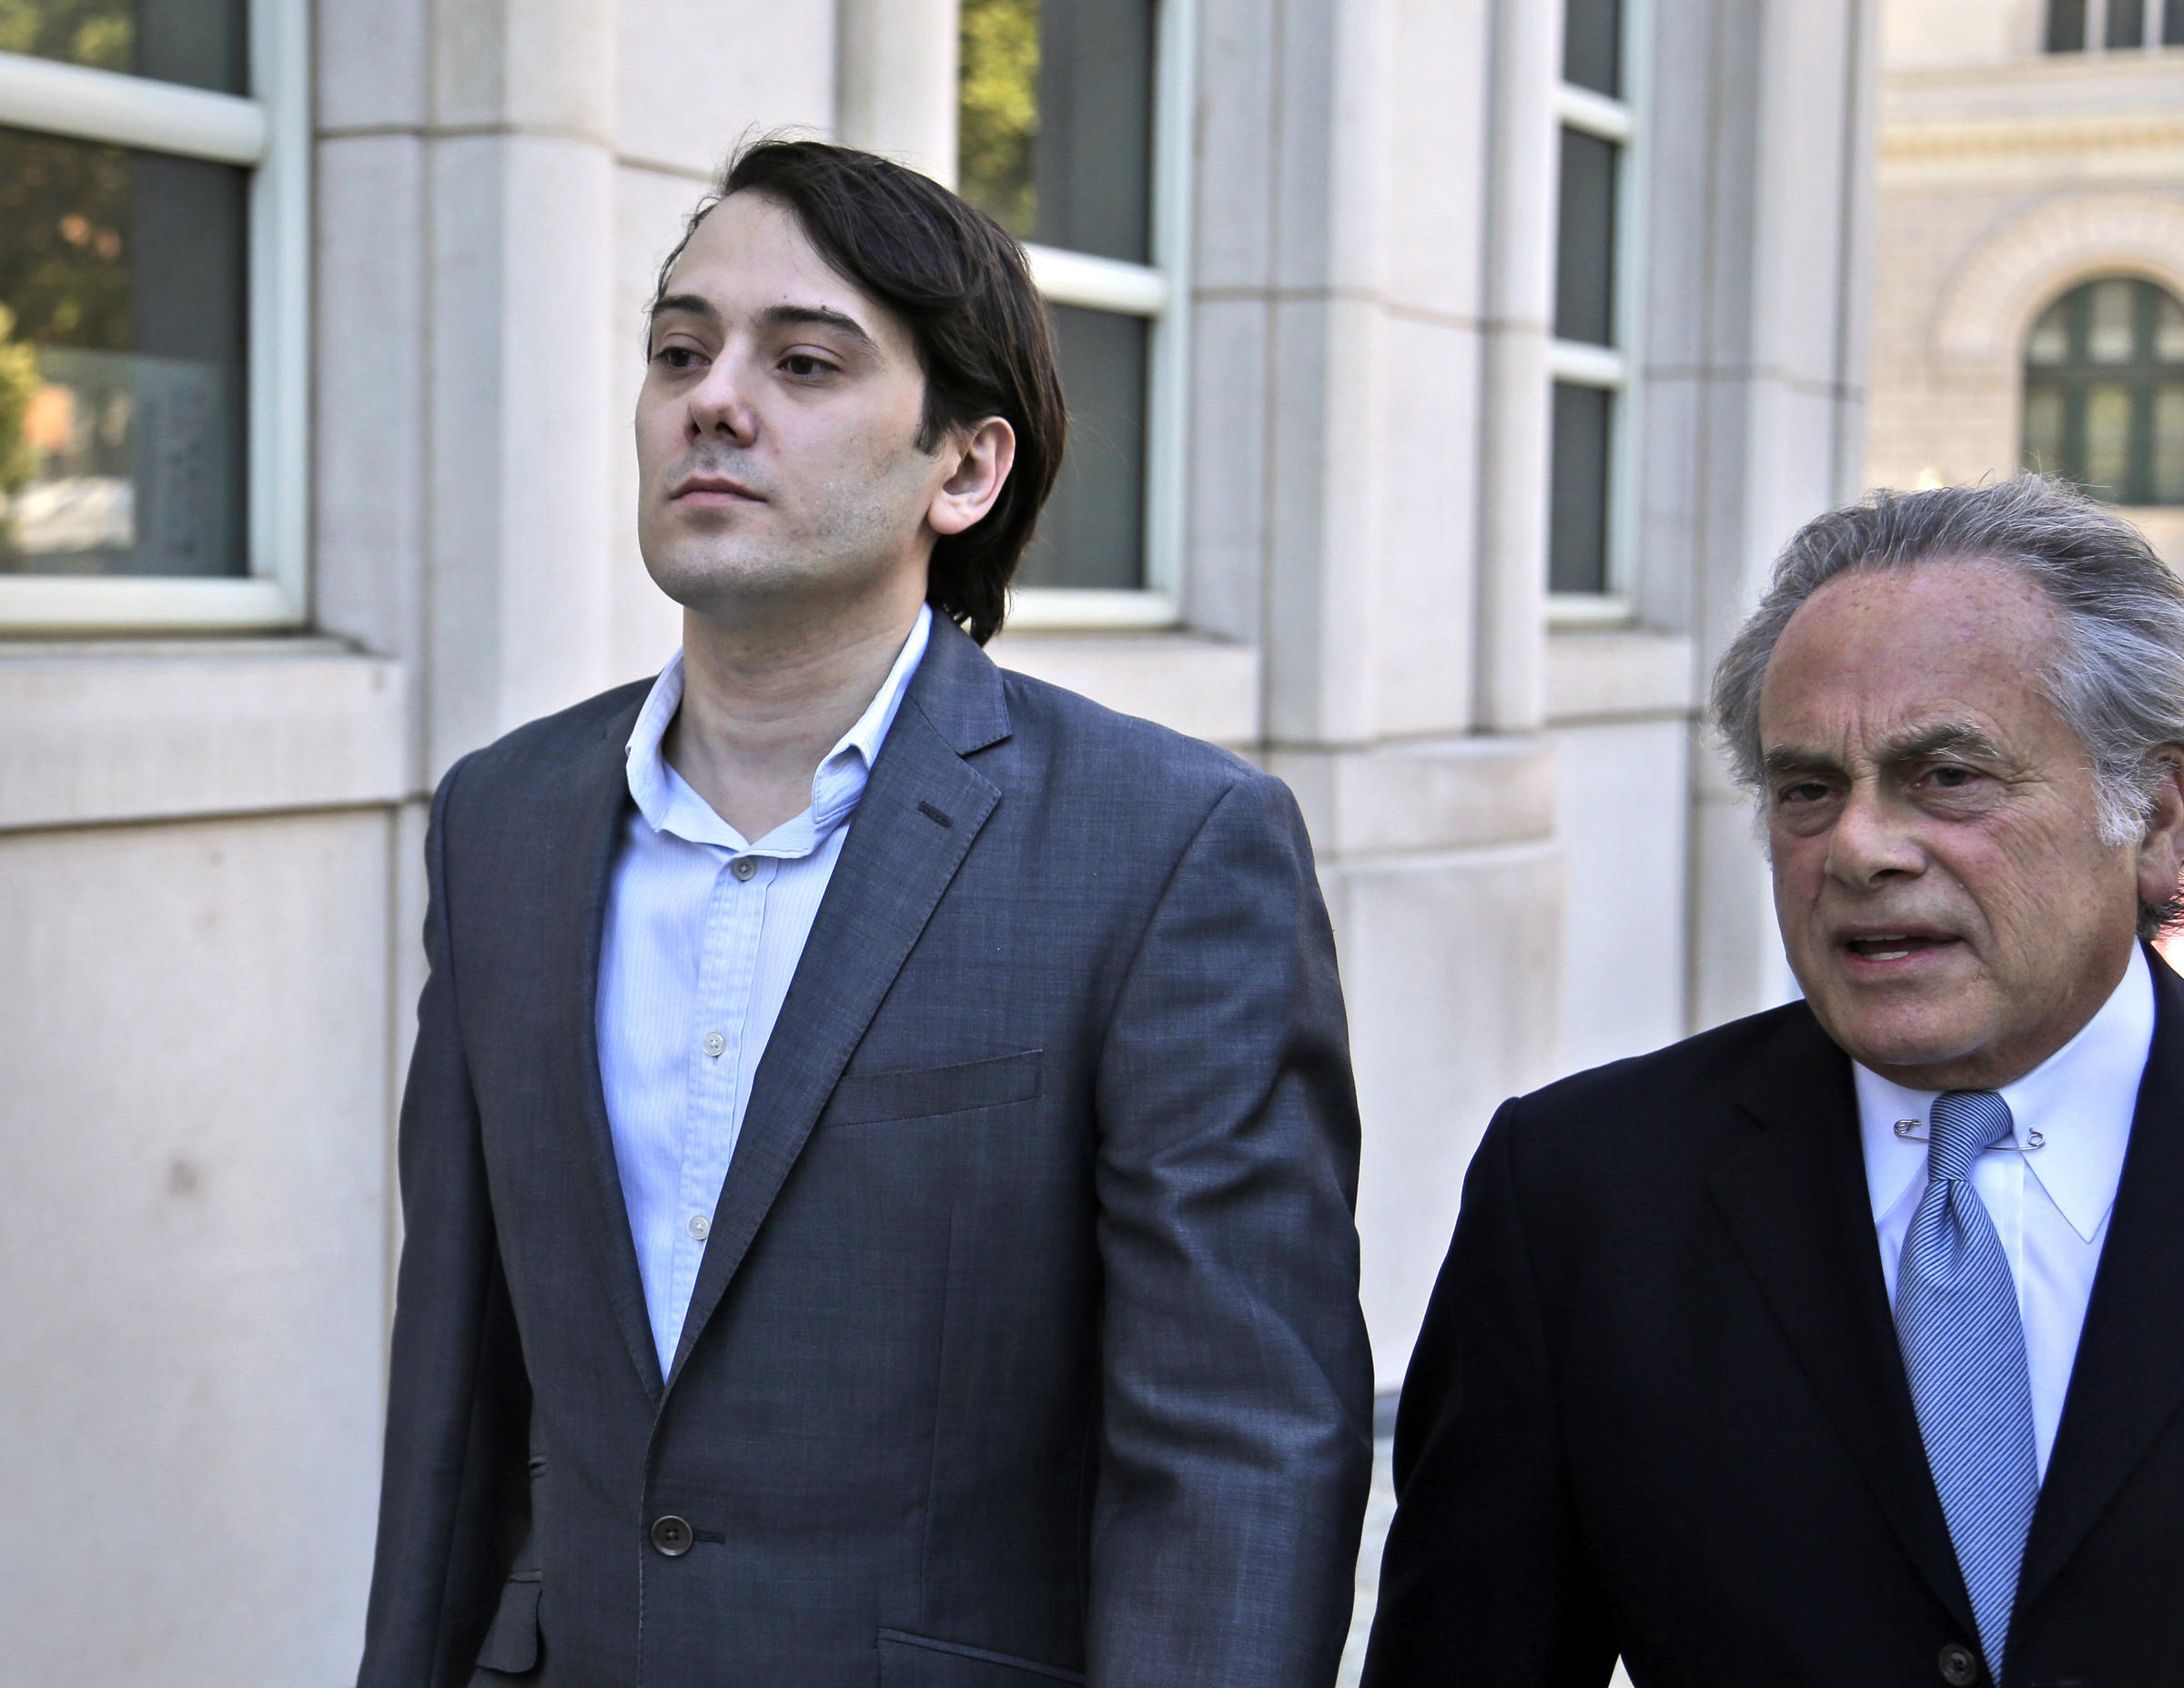 Fraud Trial for Martin Shkreli, 'Most Hated Man in America,' Begins Monday